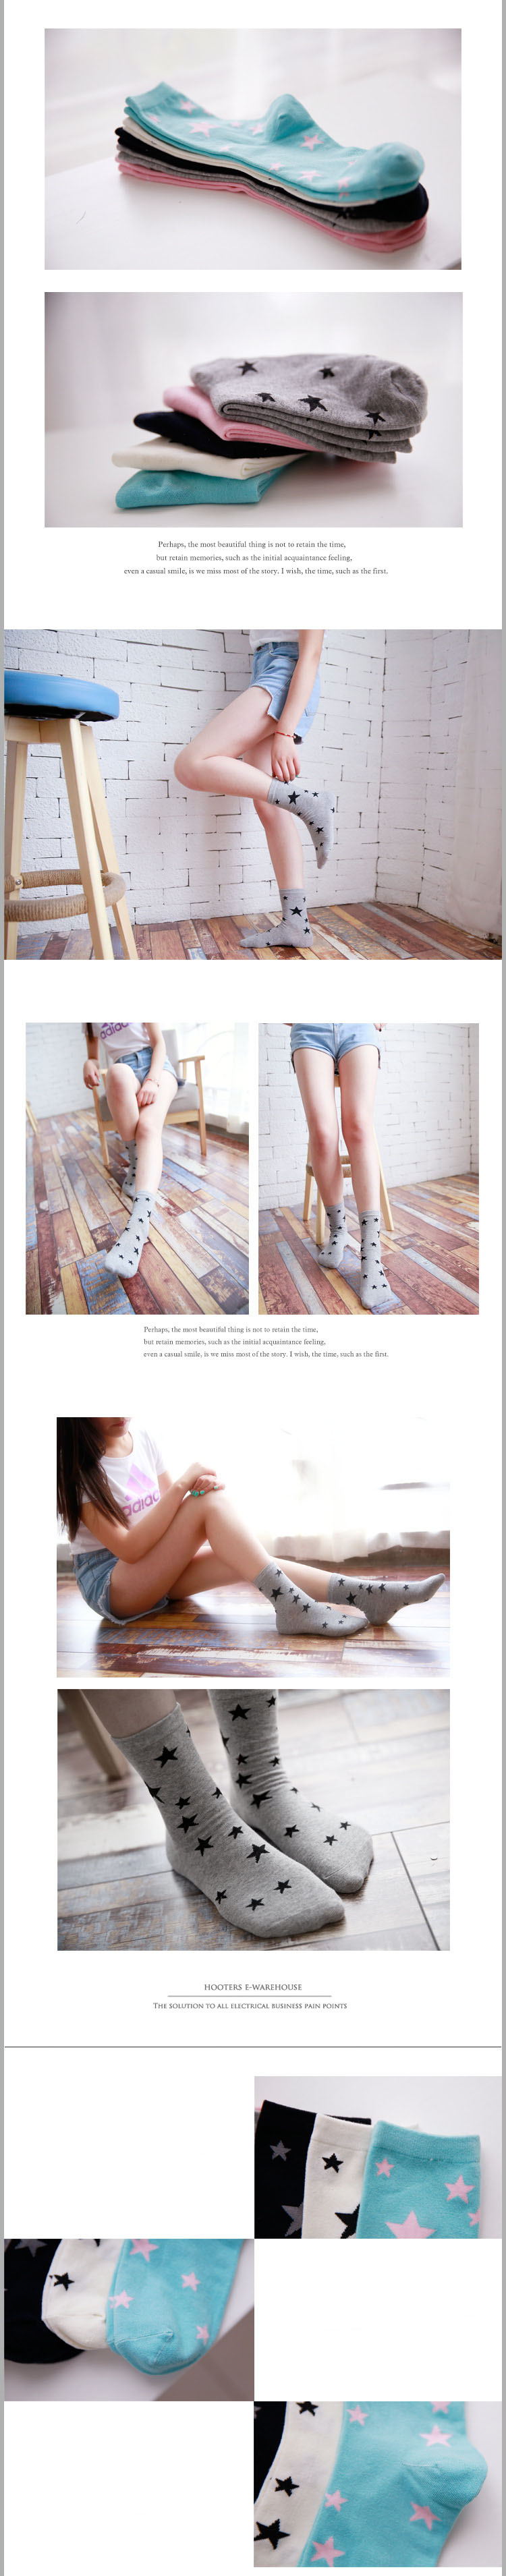 1Pair Classic Design Socks High Quality Cotton Women Socks Cute Stars Candy Color Warm Comfortable Feel Lovely Girl Wind 3